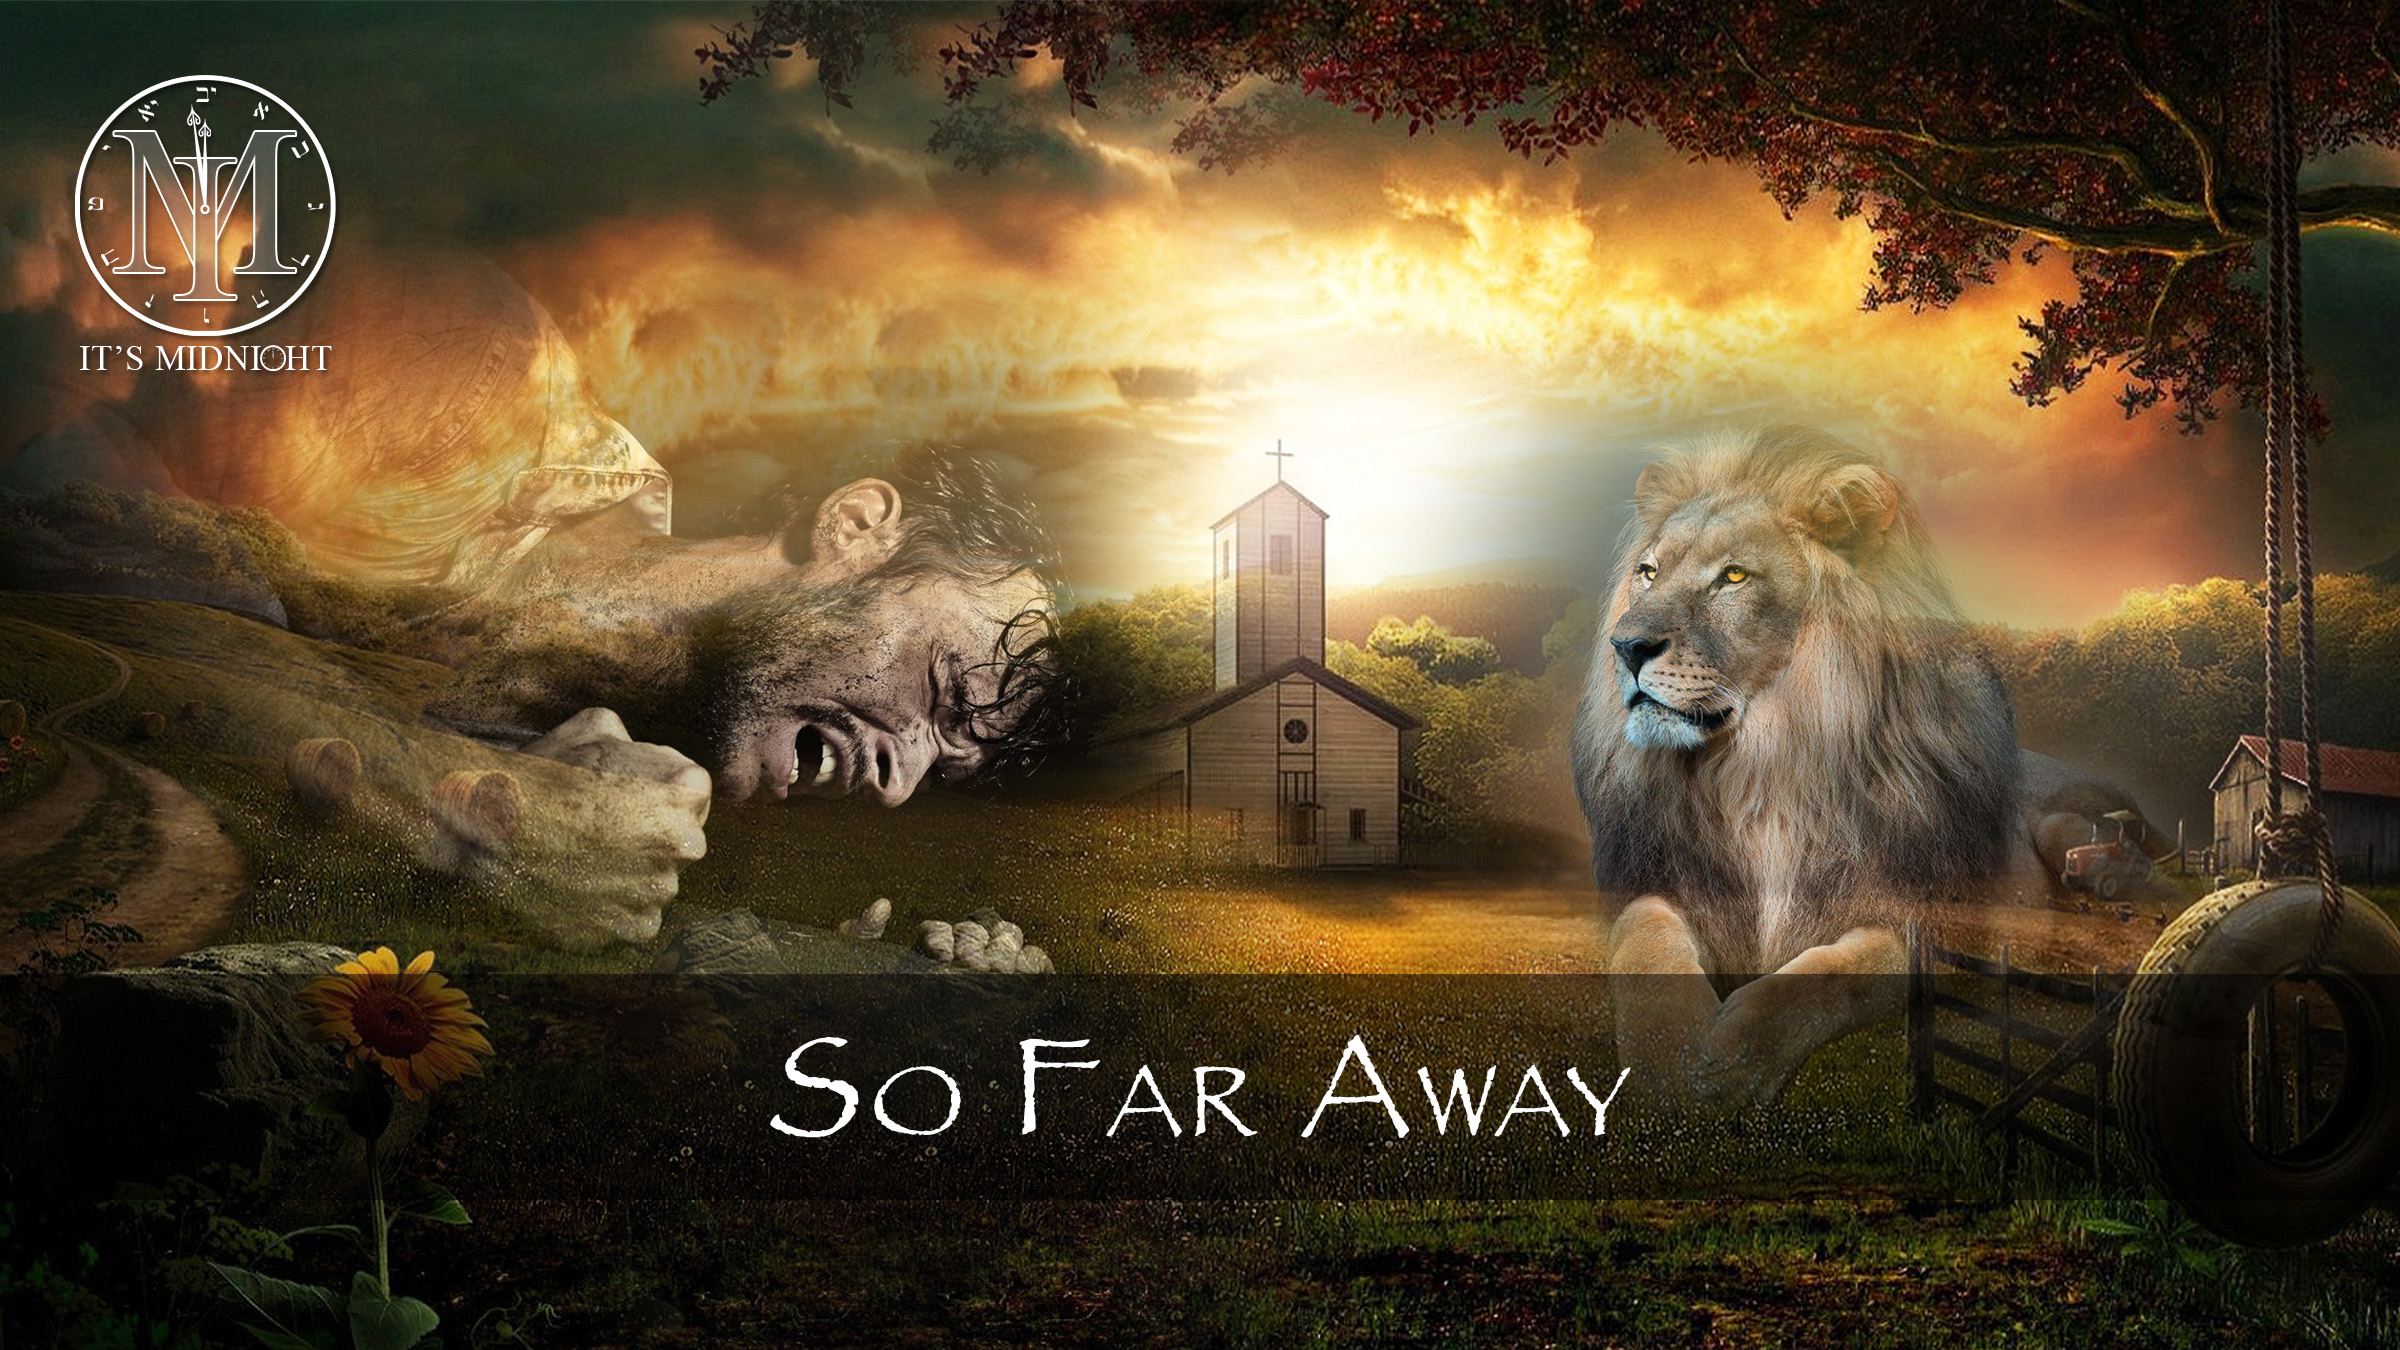 So Far Away Thumbnail (16x9) for YouTube.jpg